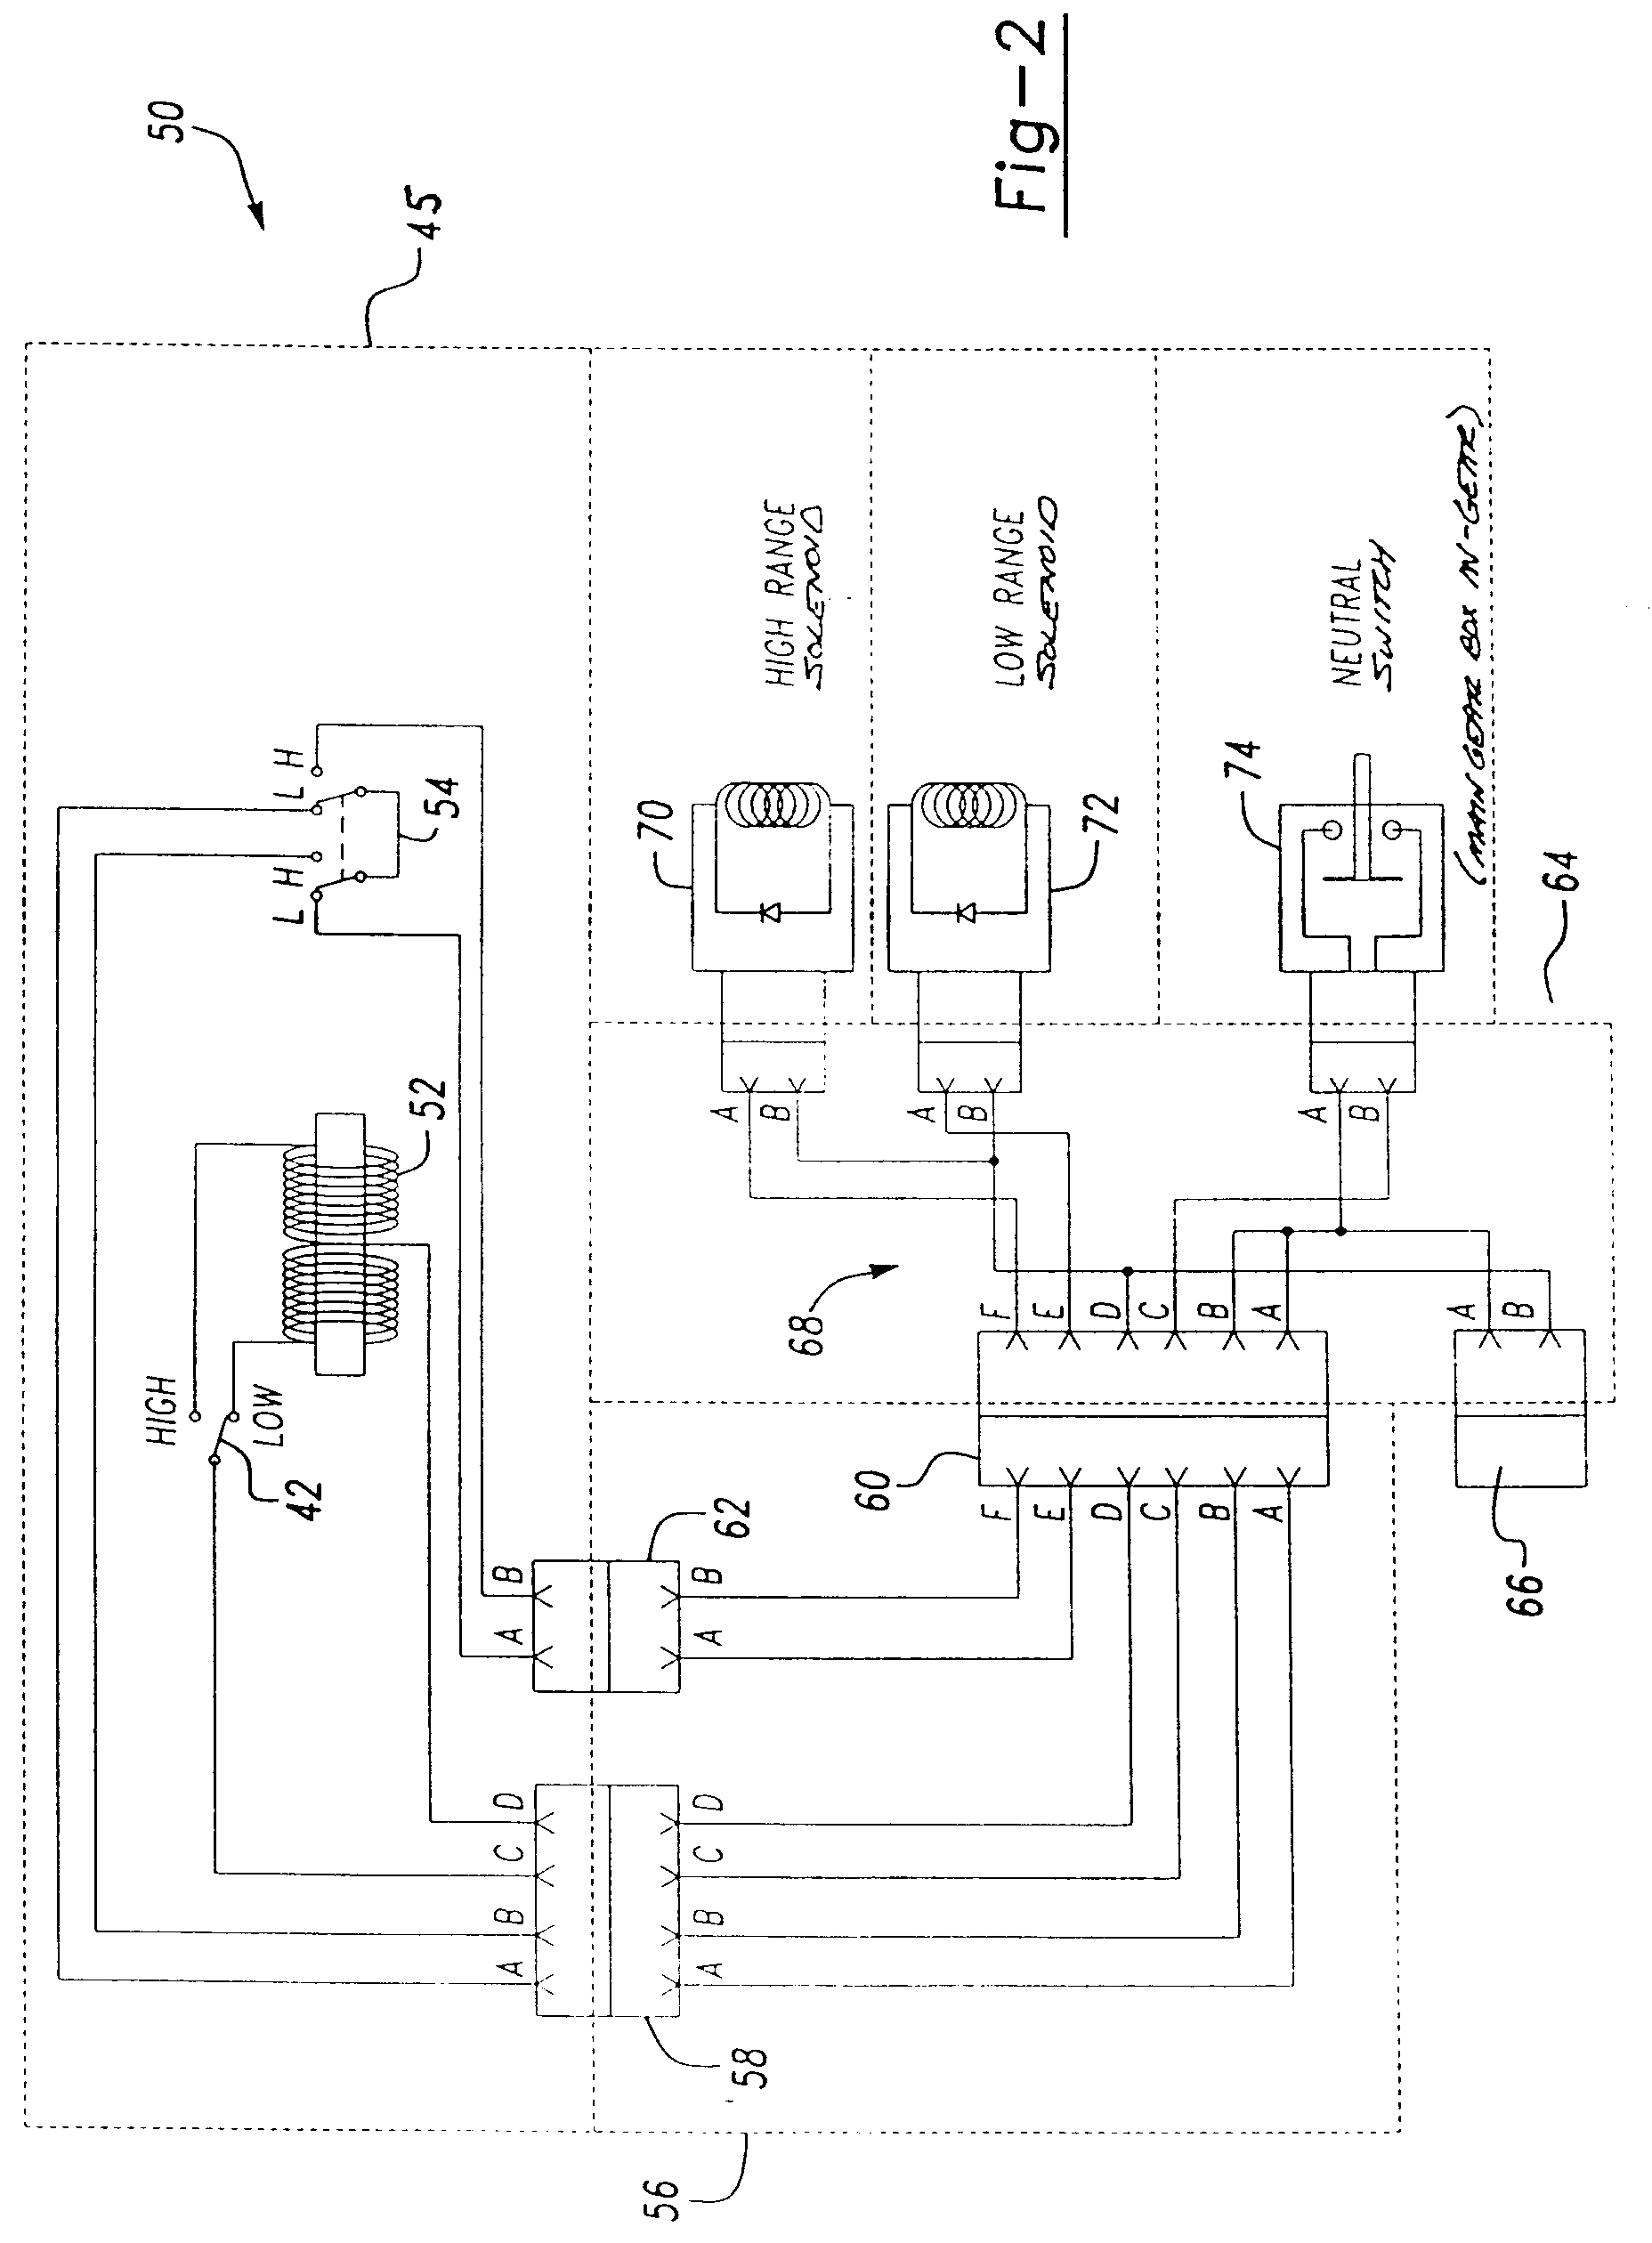 patent epa electrical transmission range shift system patent drawing